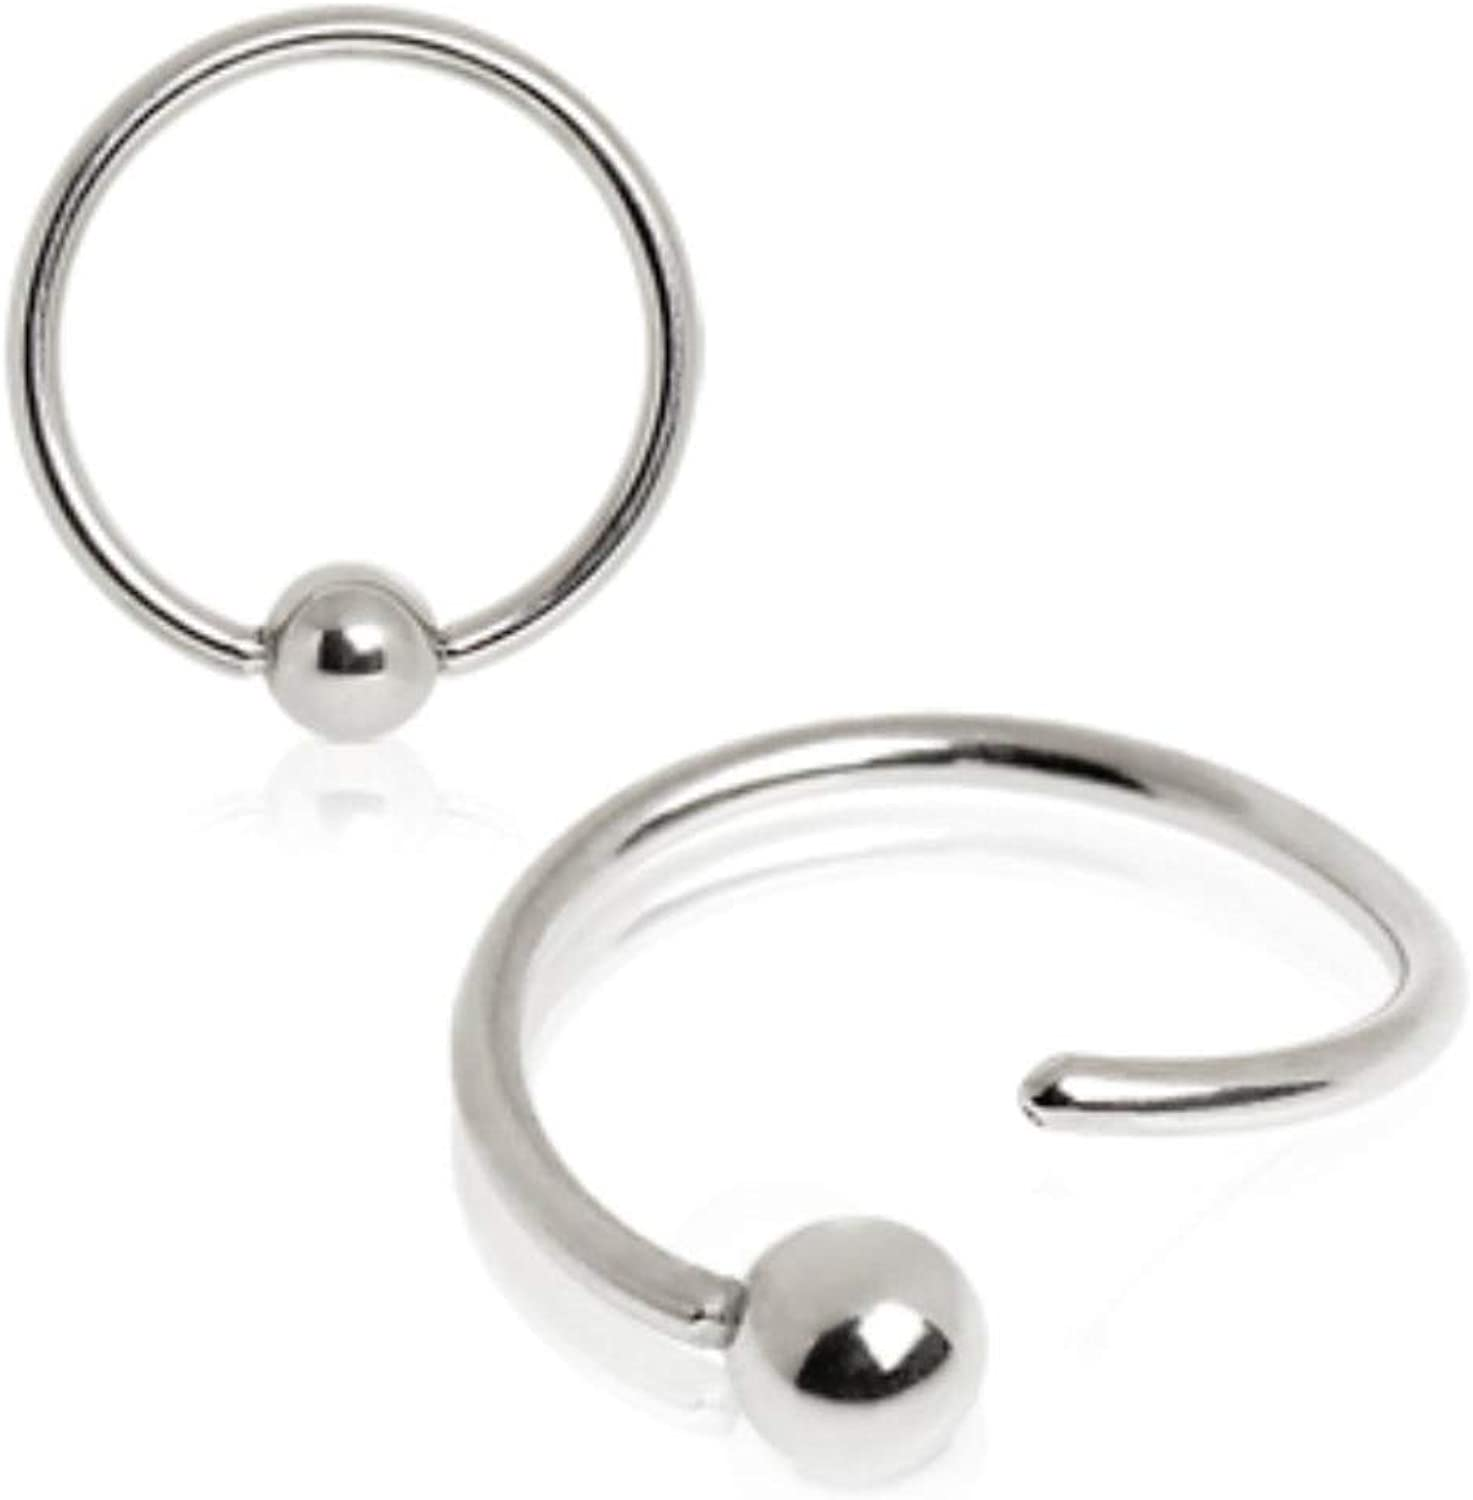 Butterfly Eyebrow Daith Helix Ear Nose Lip Captive Bead Ring Body Jewelry 16g